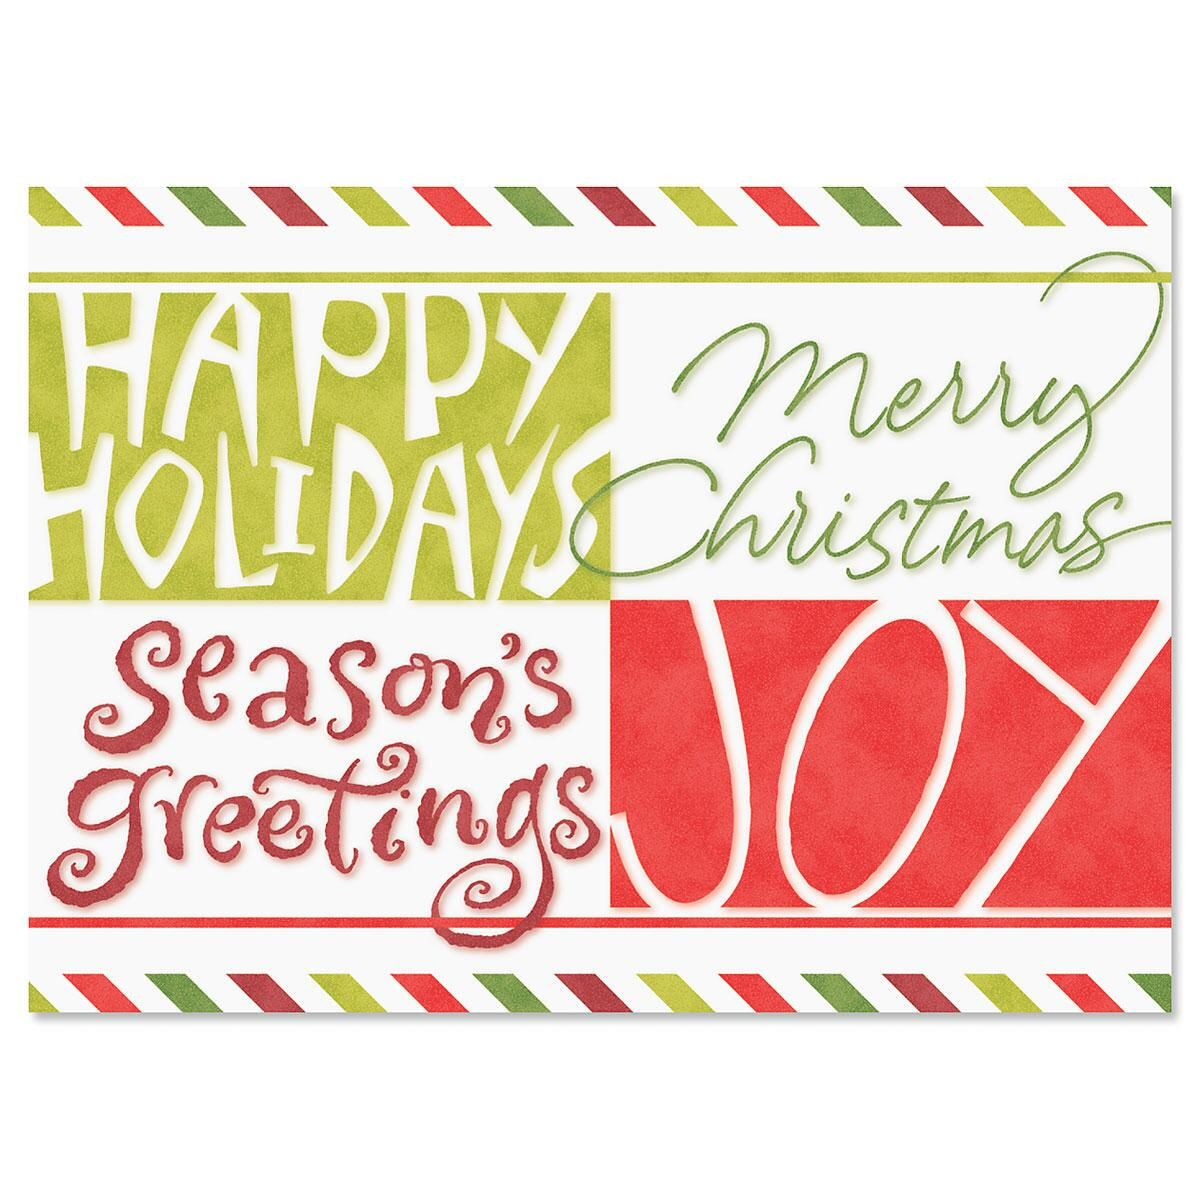 Big Greetings Personalized Christmas Cards - Set of 72